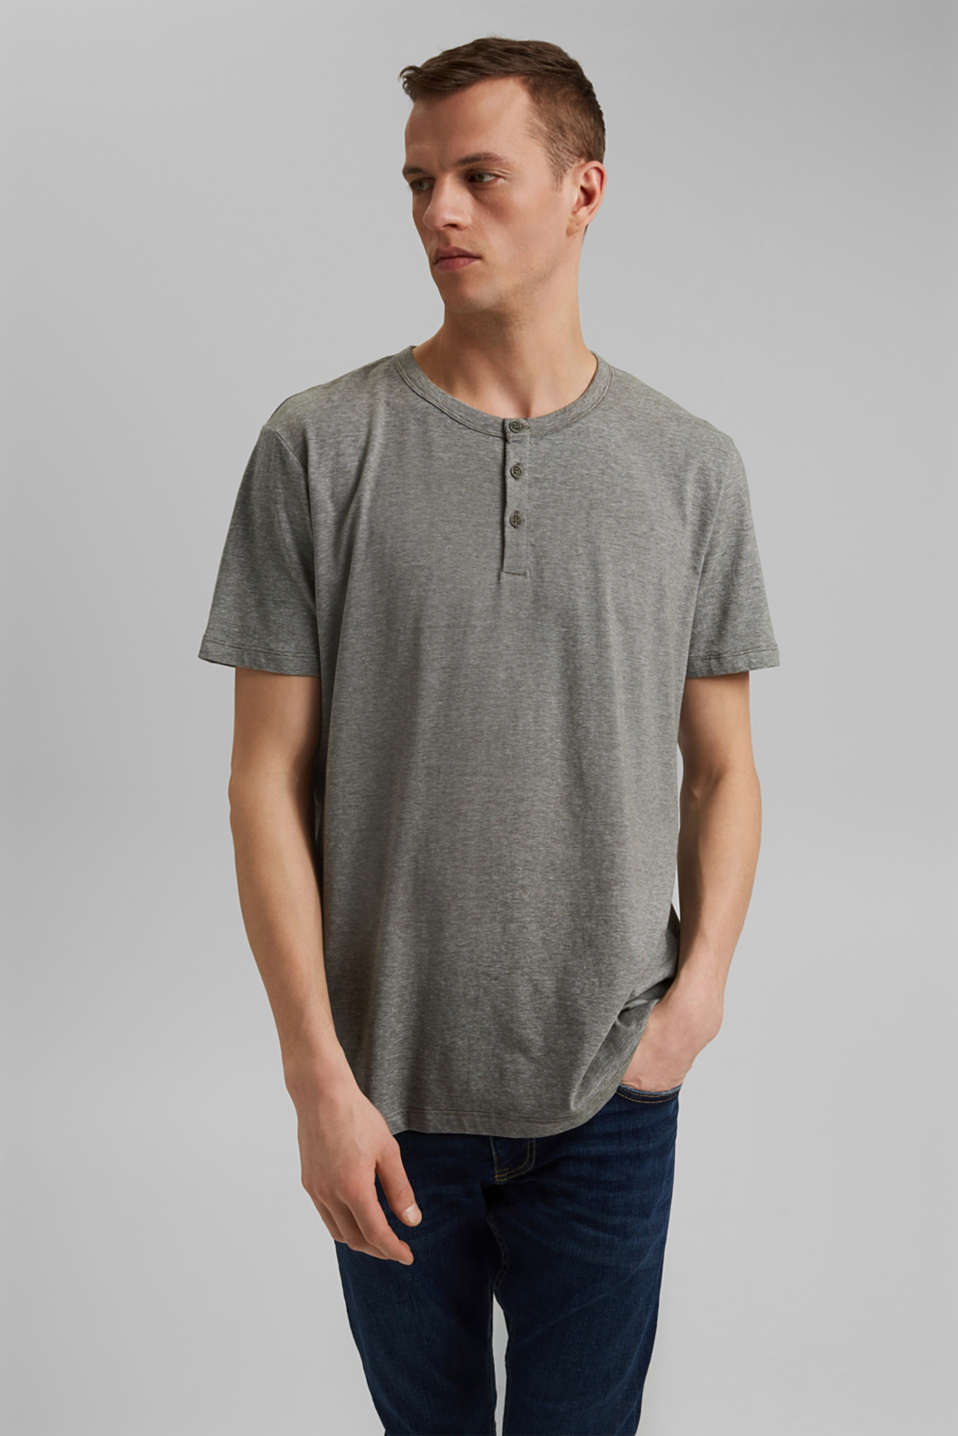 Esprit - Jersey top made of 100% organic cotton